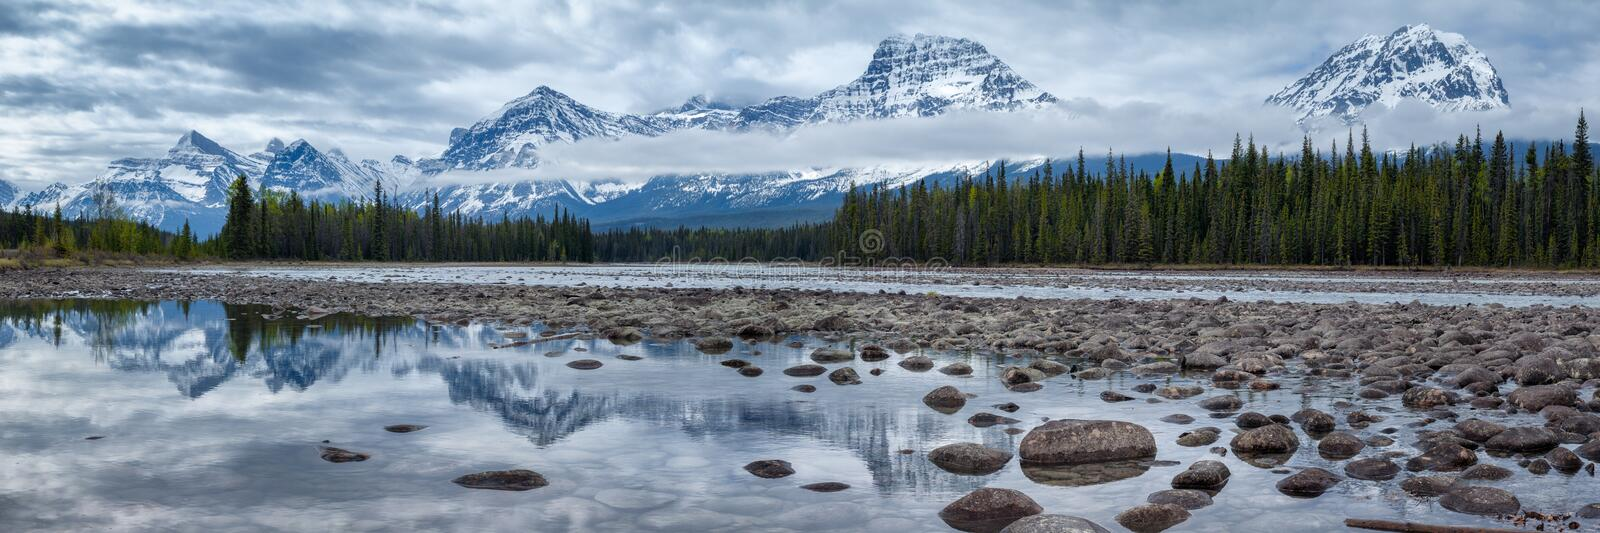 Mountains in Jasper National Park along the Athabasca River stock images